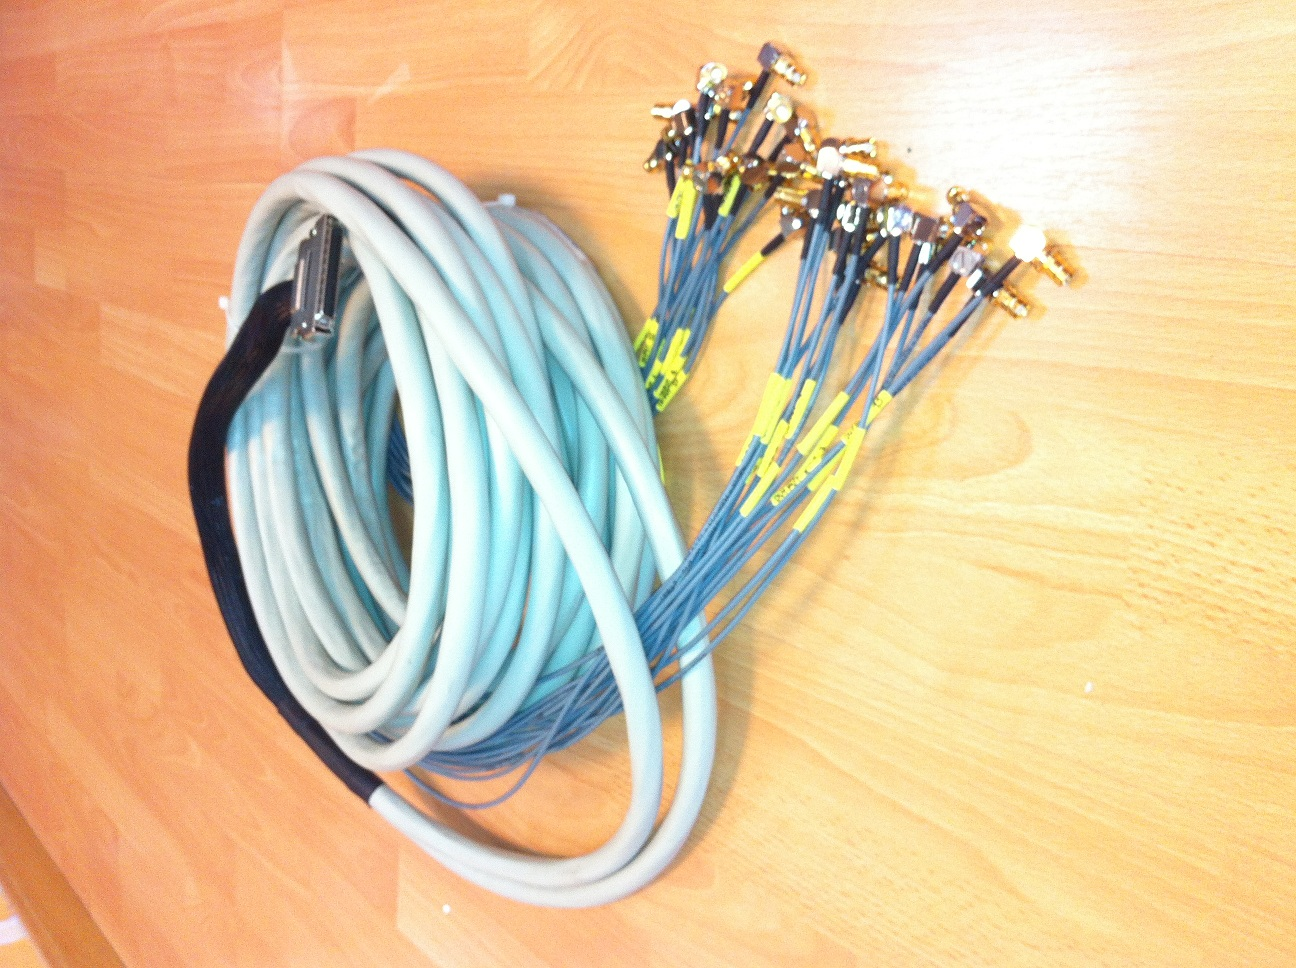 CABLE 32 TRAMAS-4p